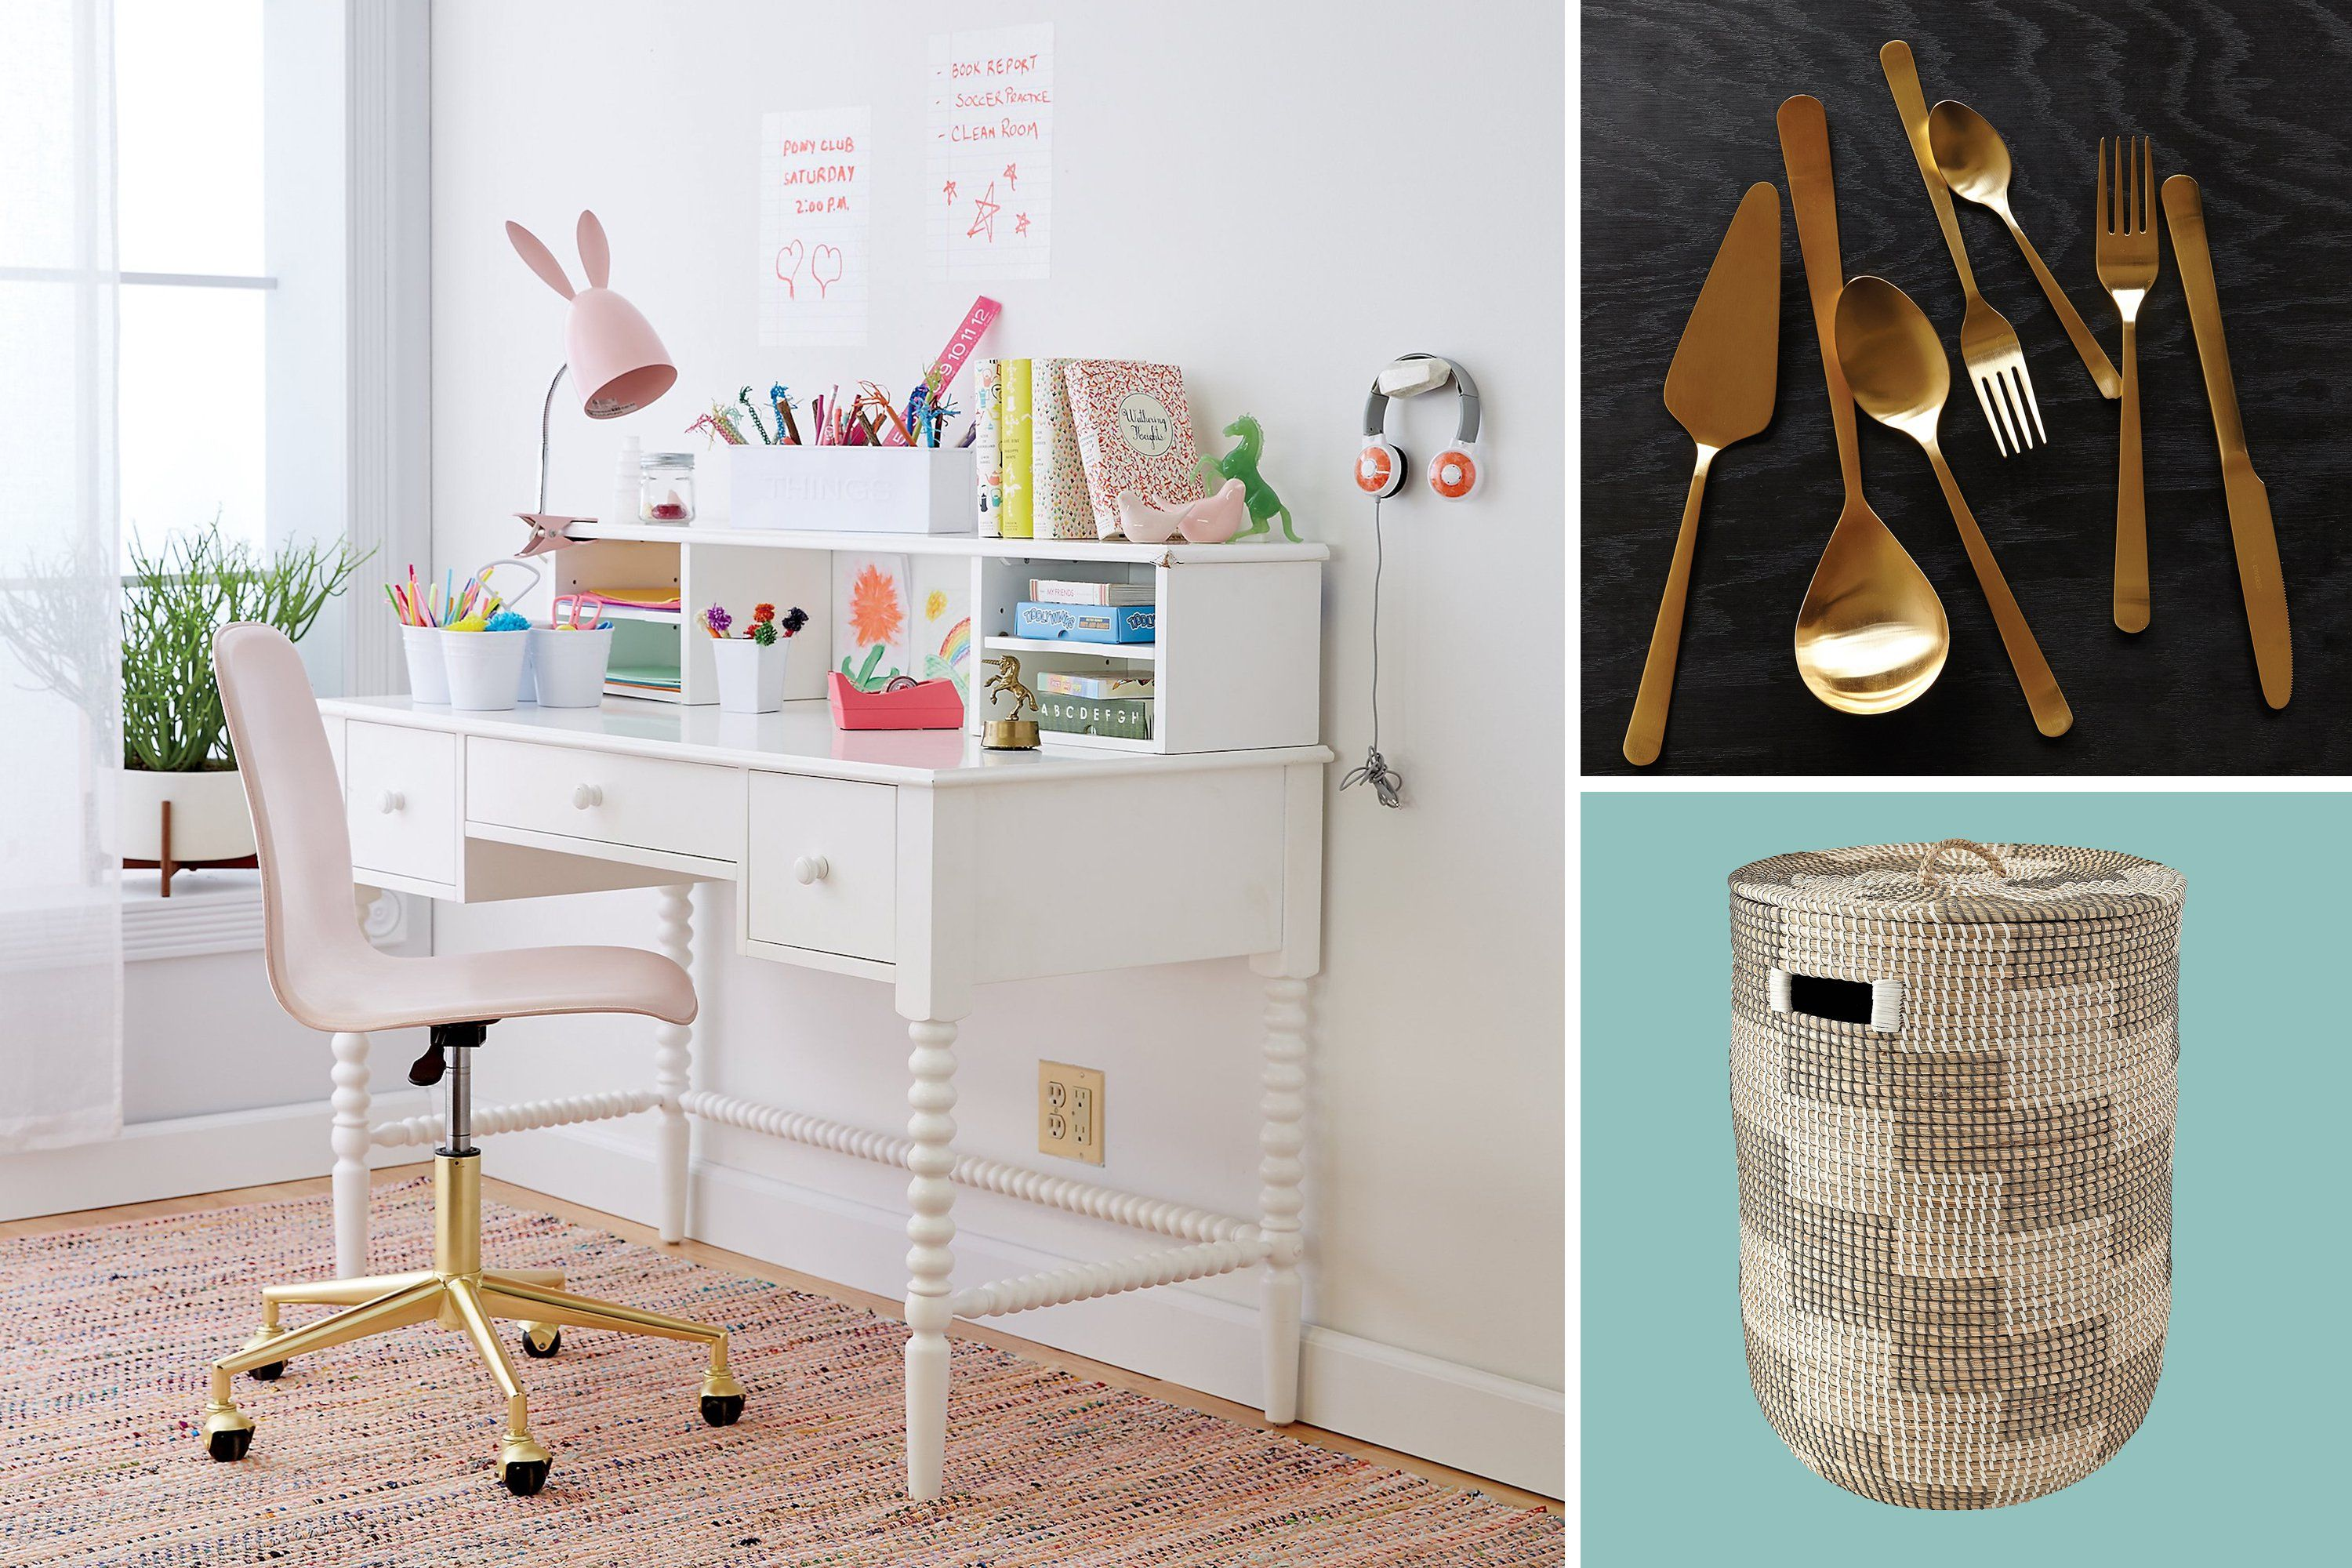 Haus-tempel-design-interieur interior design experts recommend  places to buy cheap home goods